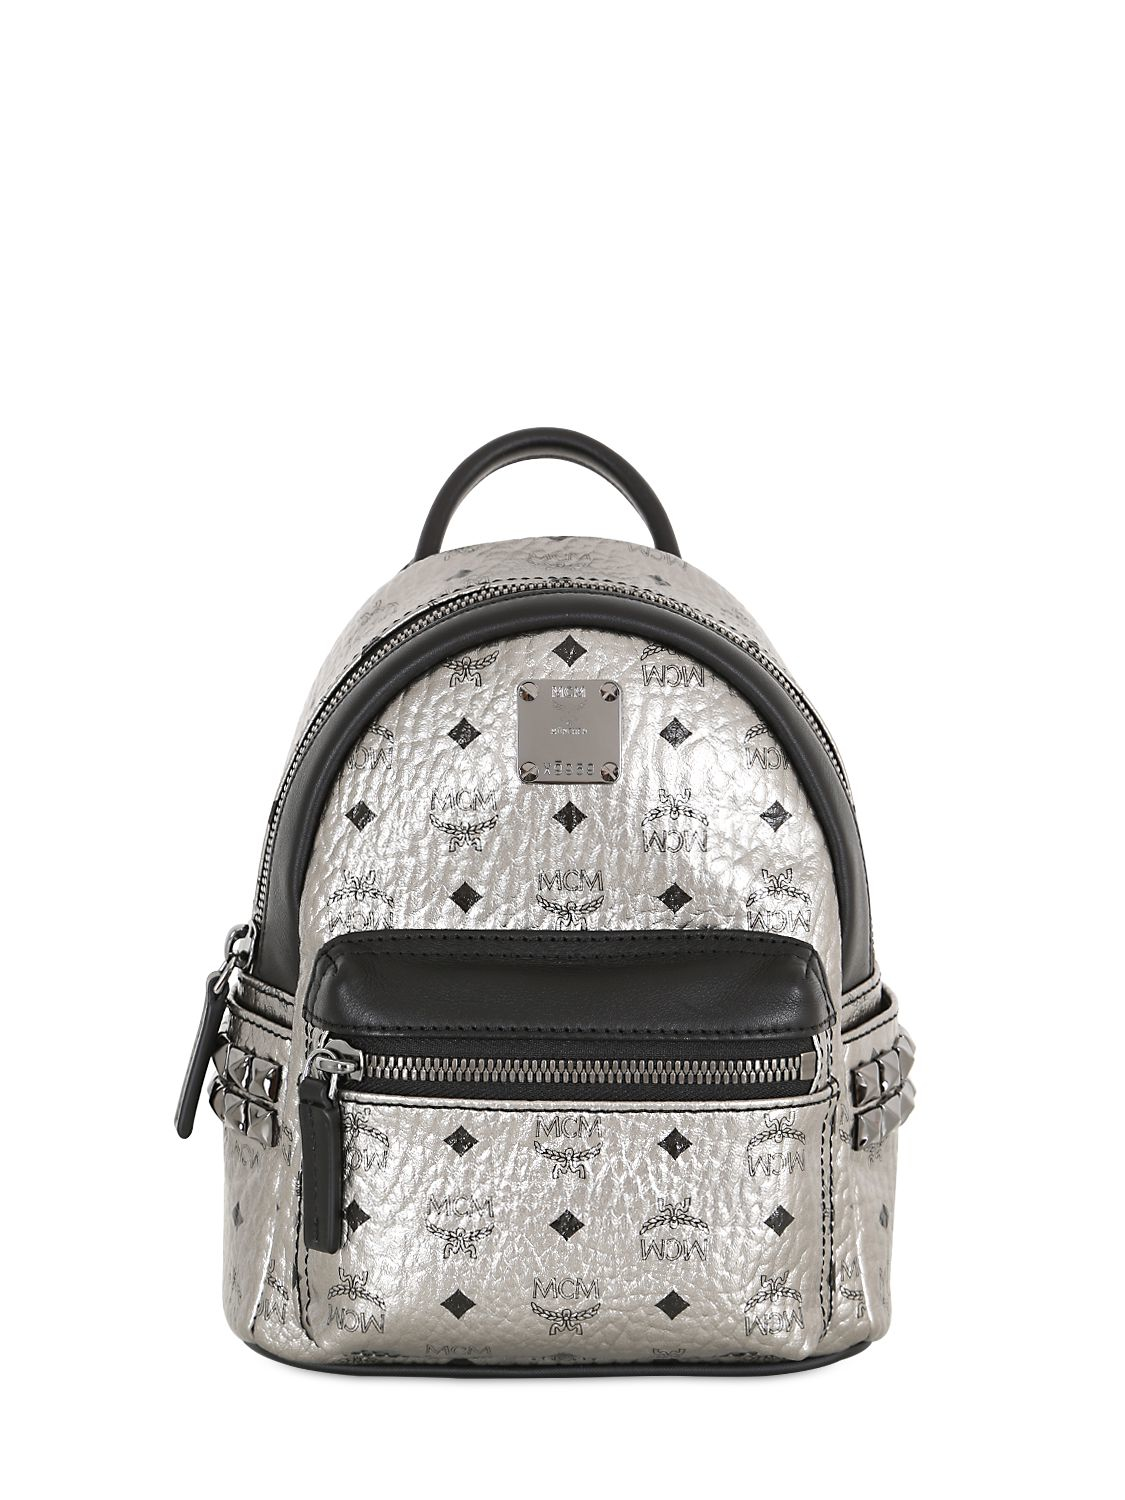 mcm extra mini stark laminated backpack in silver lyst. Black Bedroom Furniture Sets. Home Design Ideas